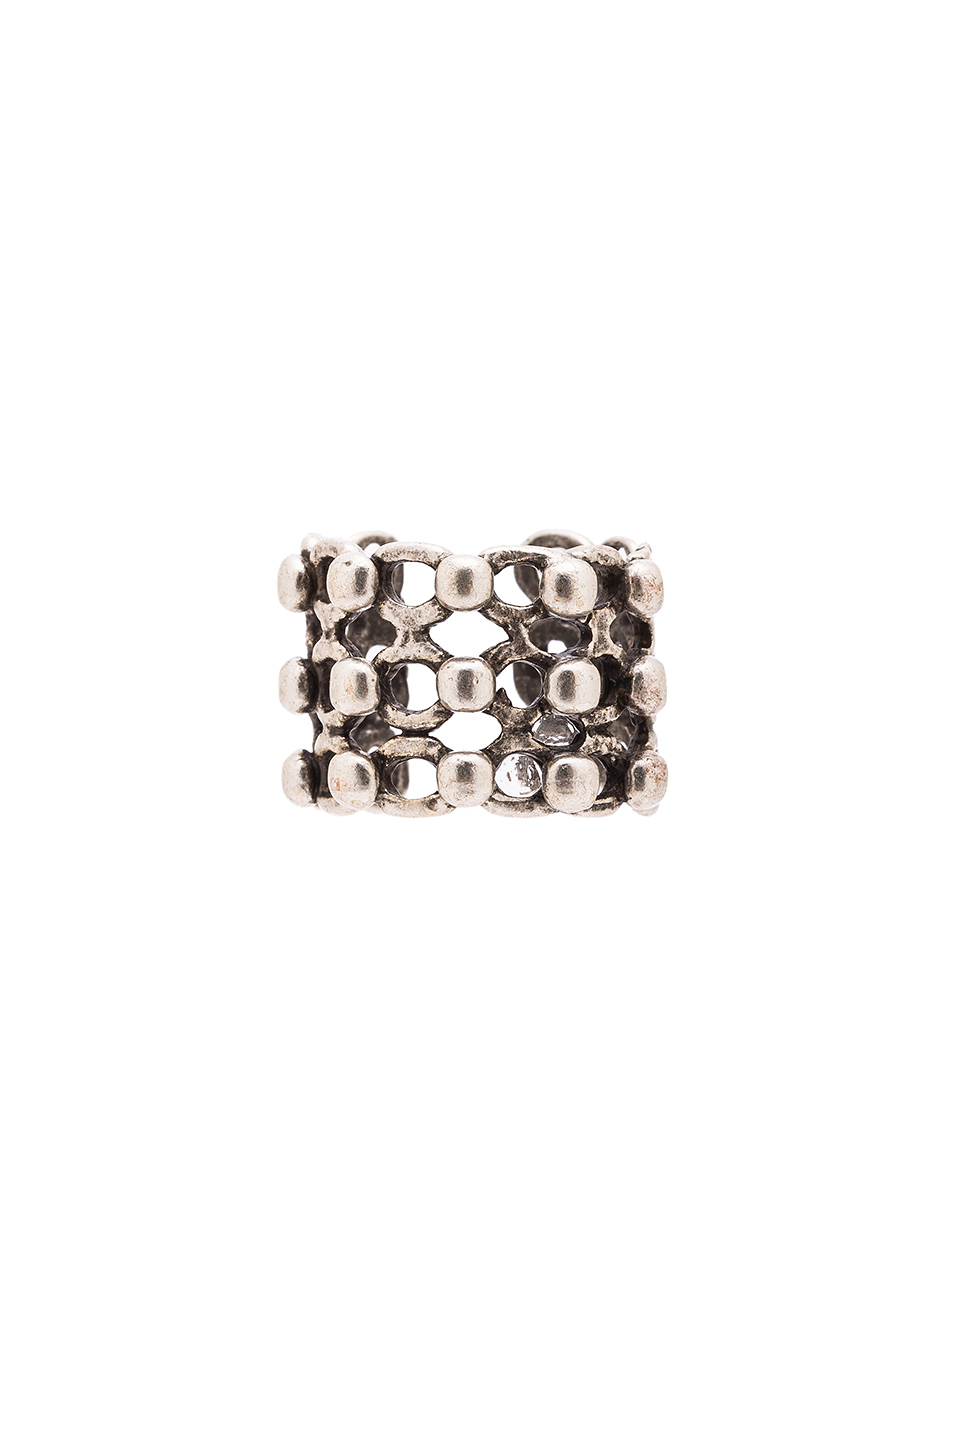 Natalie B Jewelry Odyssey Ring in Metallic Silver